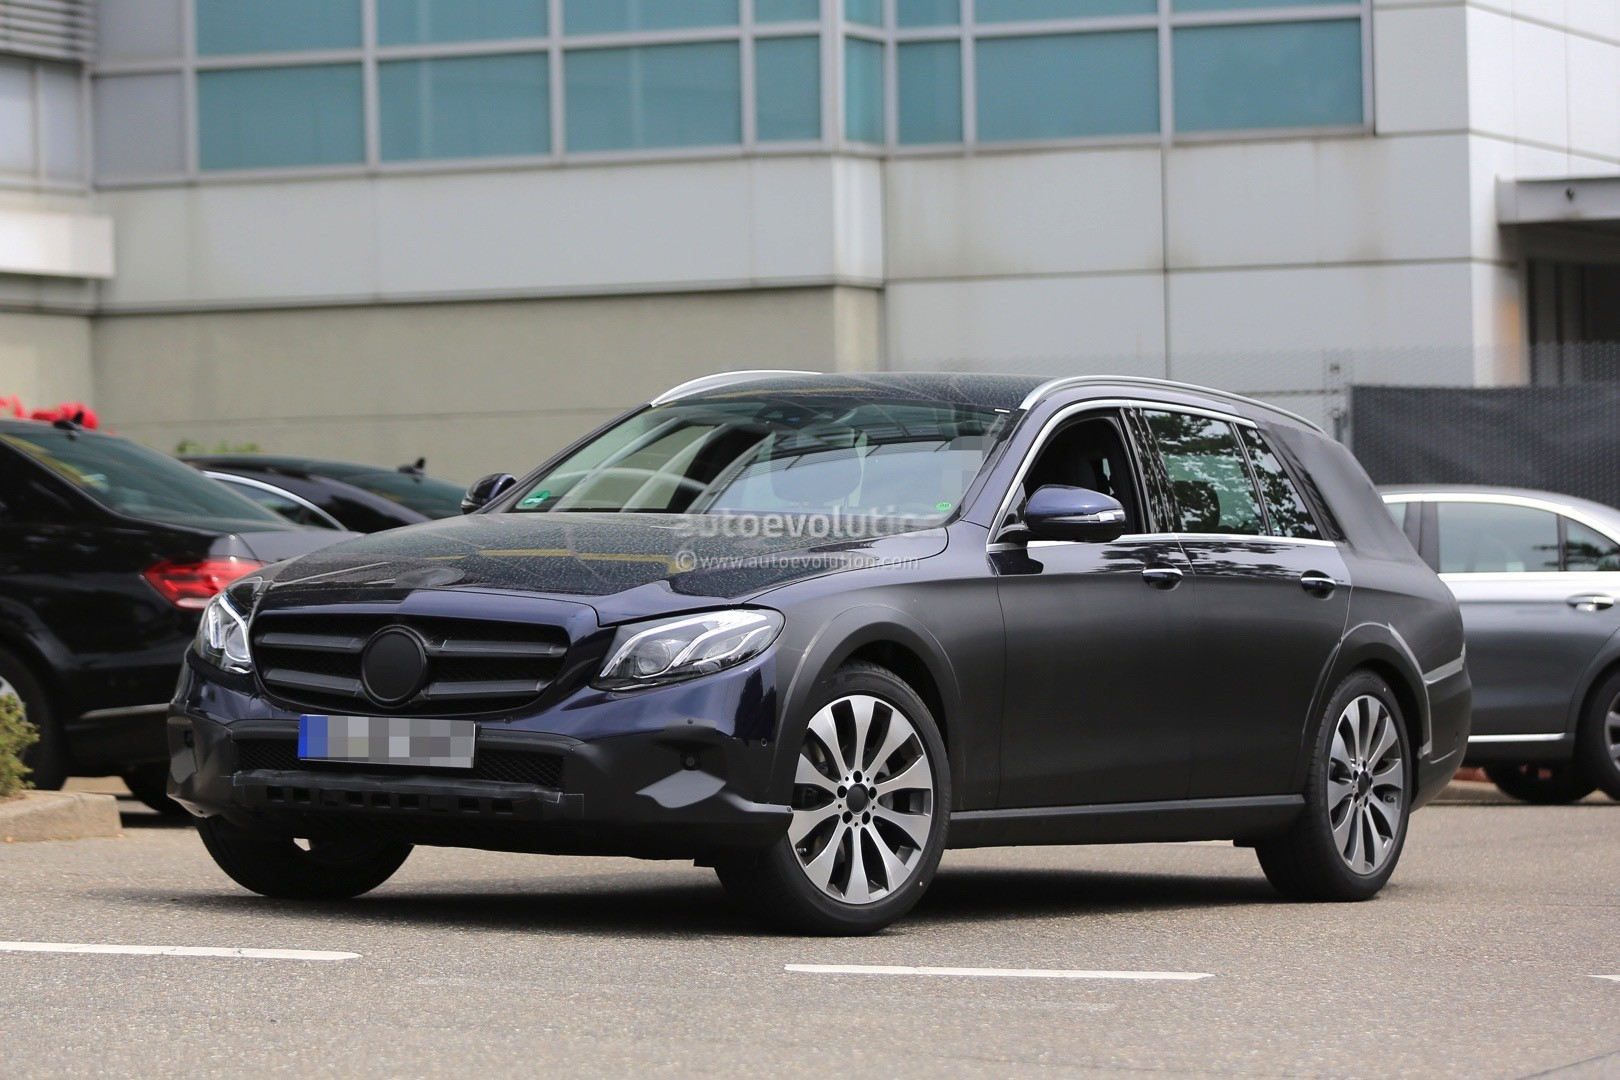 2017 mercedes benz e class all terrain x213 spied in germany autoevolution. Cars Review. Best American Auto & Cars Review